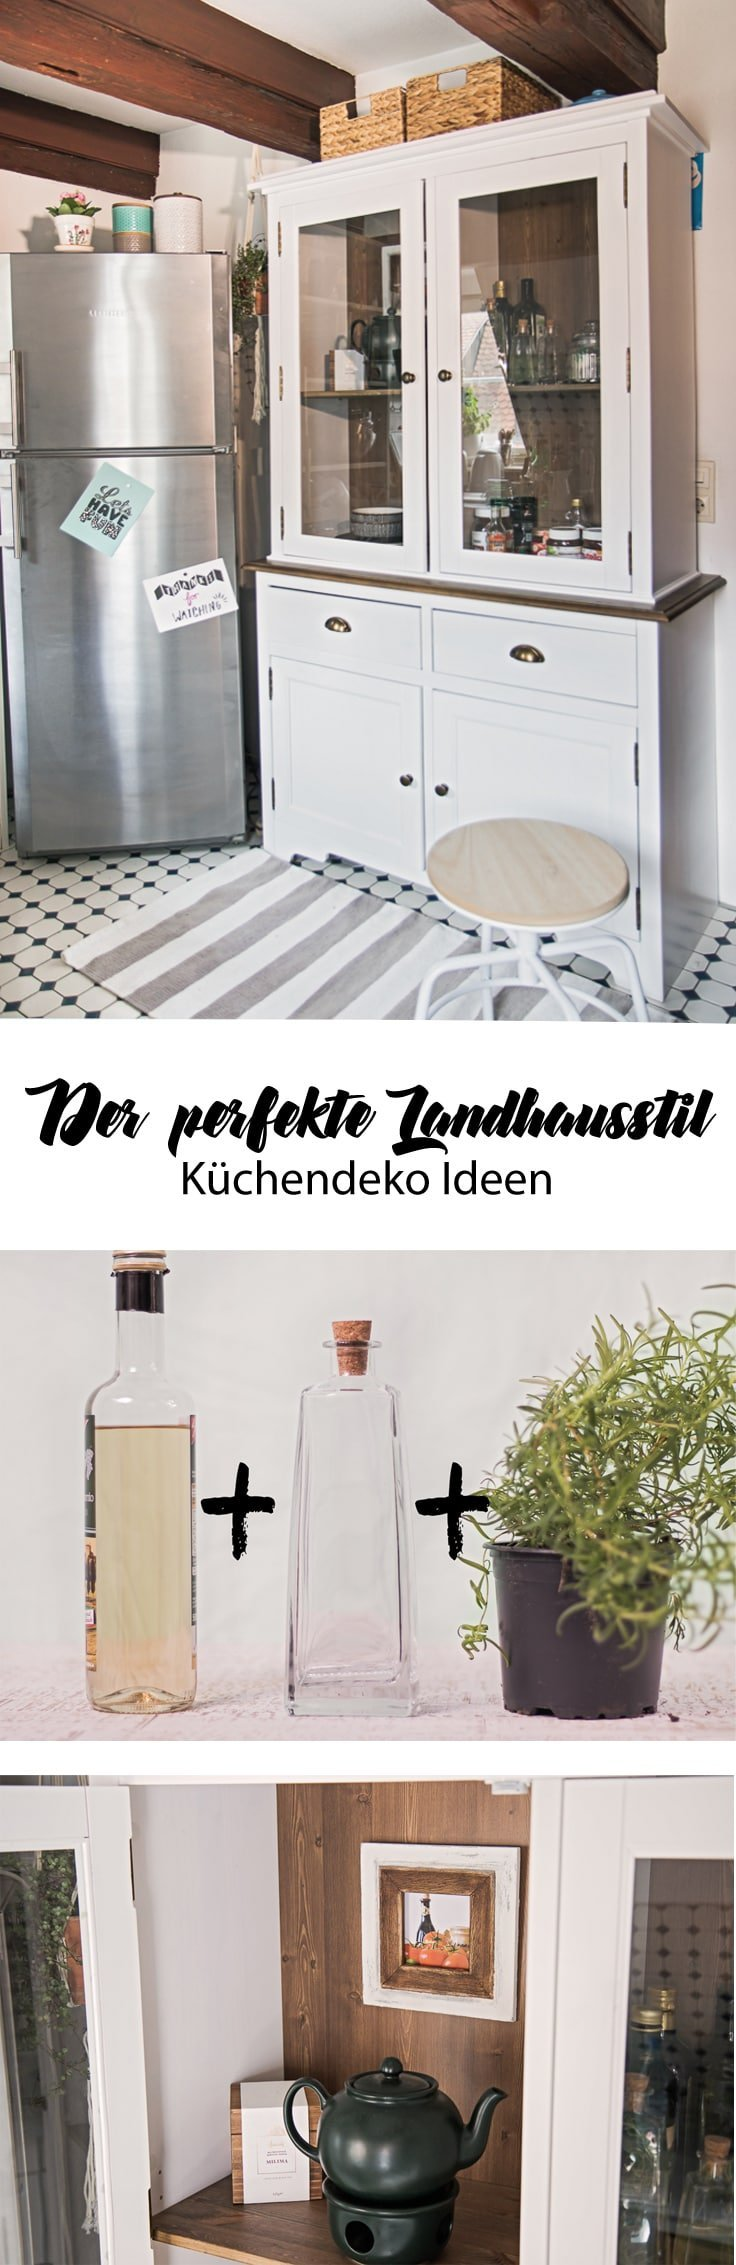 moderner landhausstil k che einrichten diy ideen. Black Bedroom Furniture Sets. Home Design Ideas